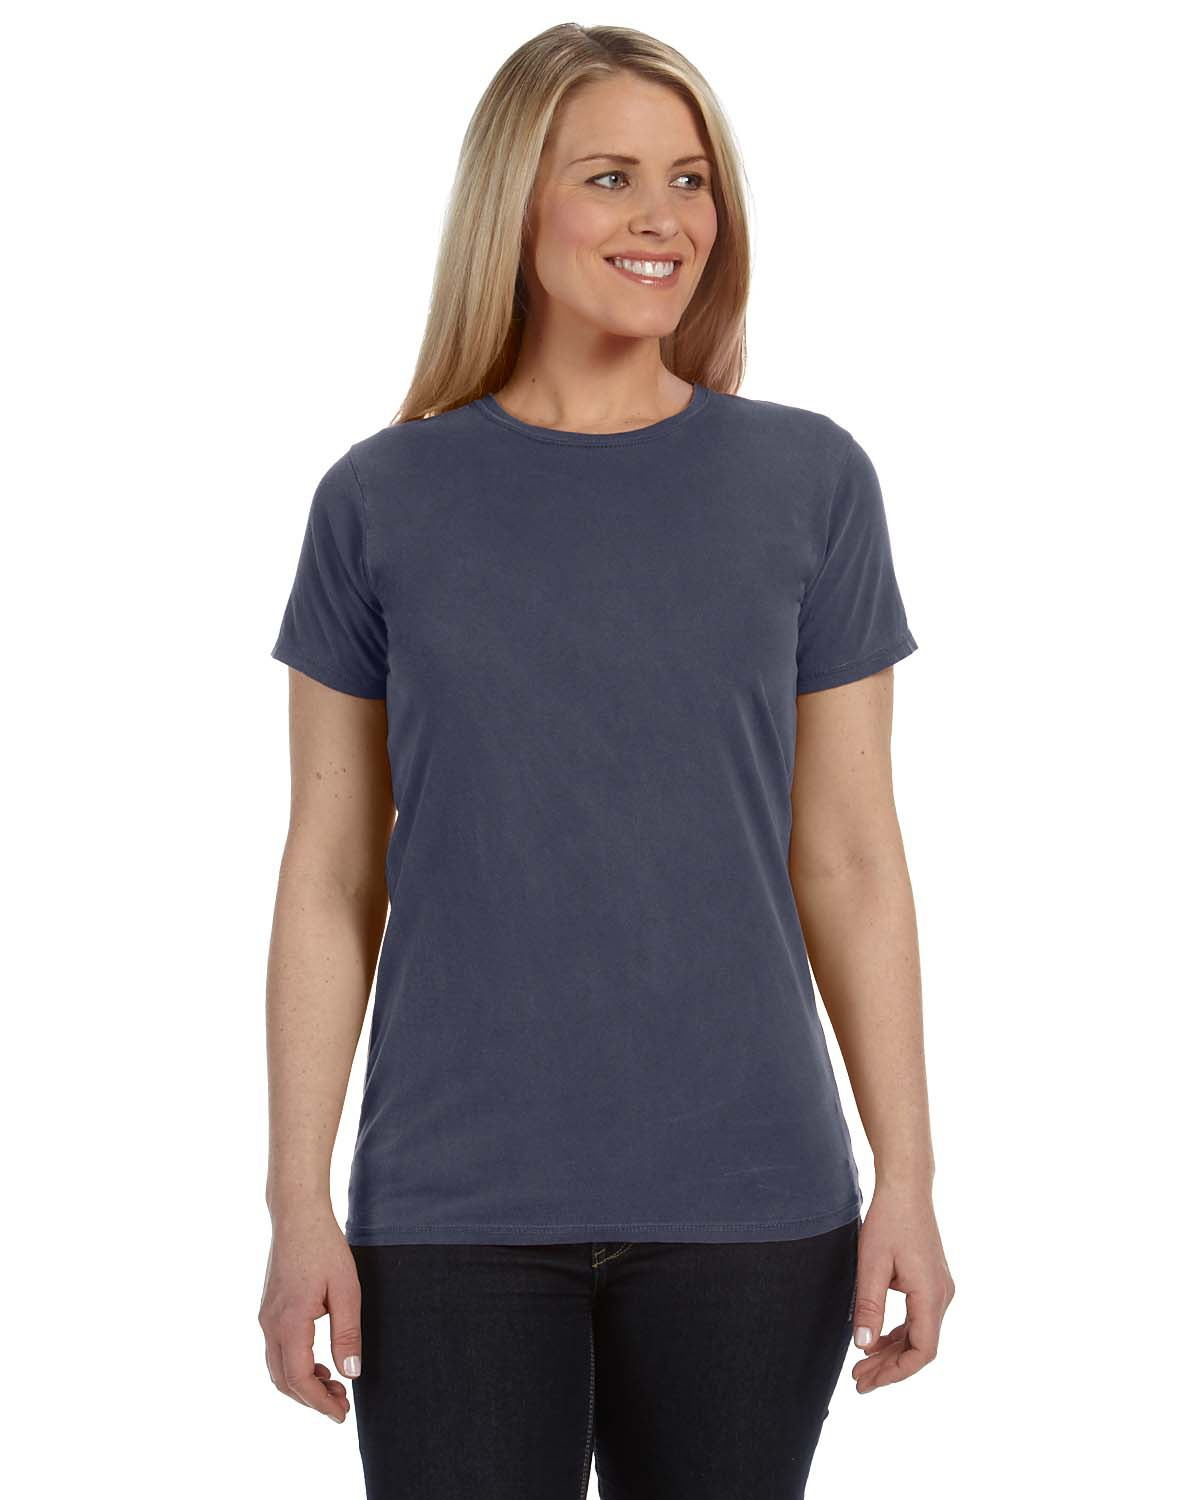 Comfort Colors C4200 - Ladies' 4.8 oz. Ringspun Garment-Dyed T-Shirt